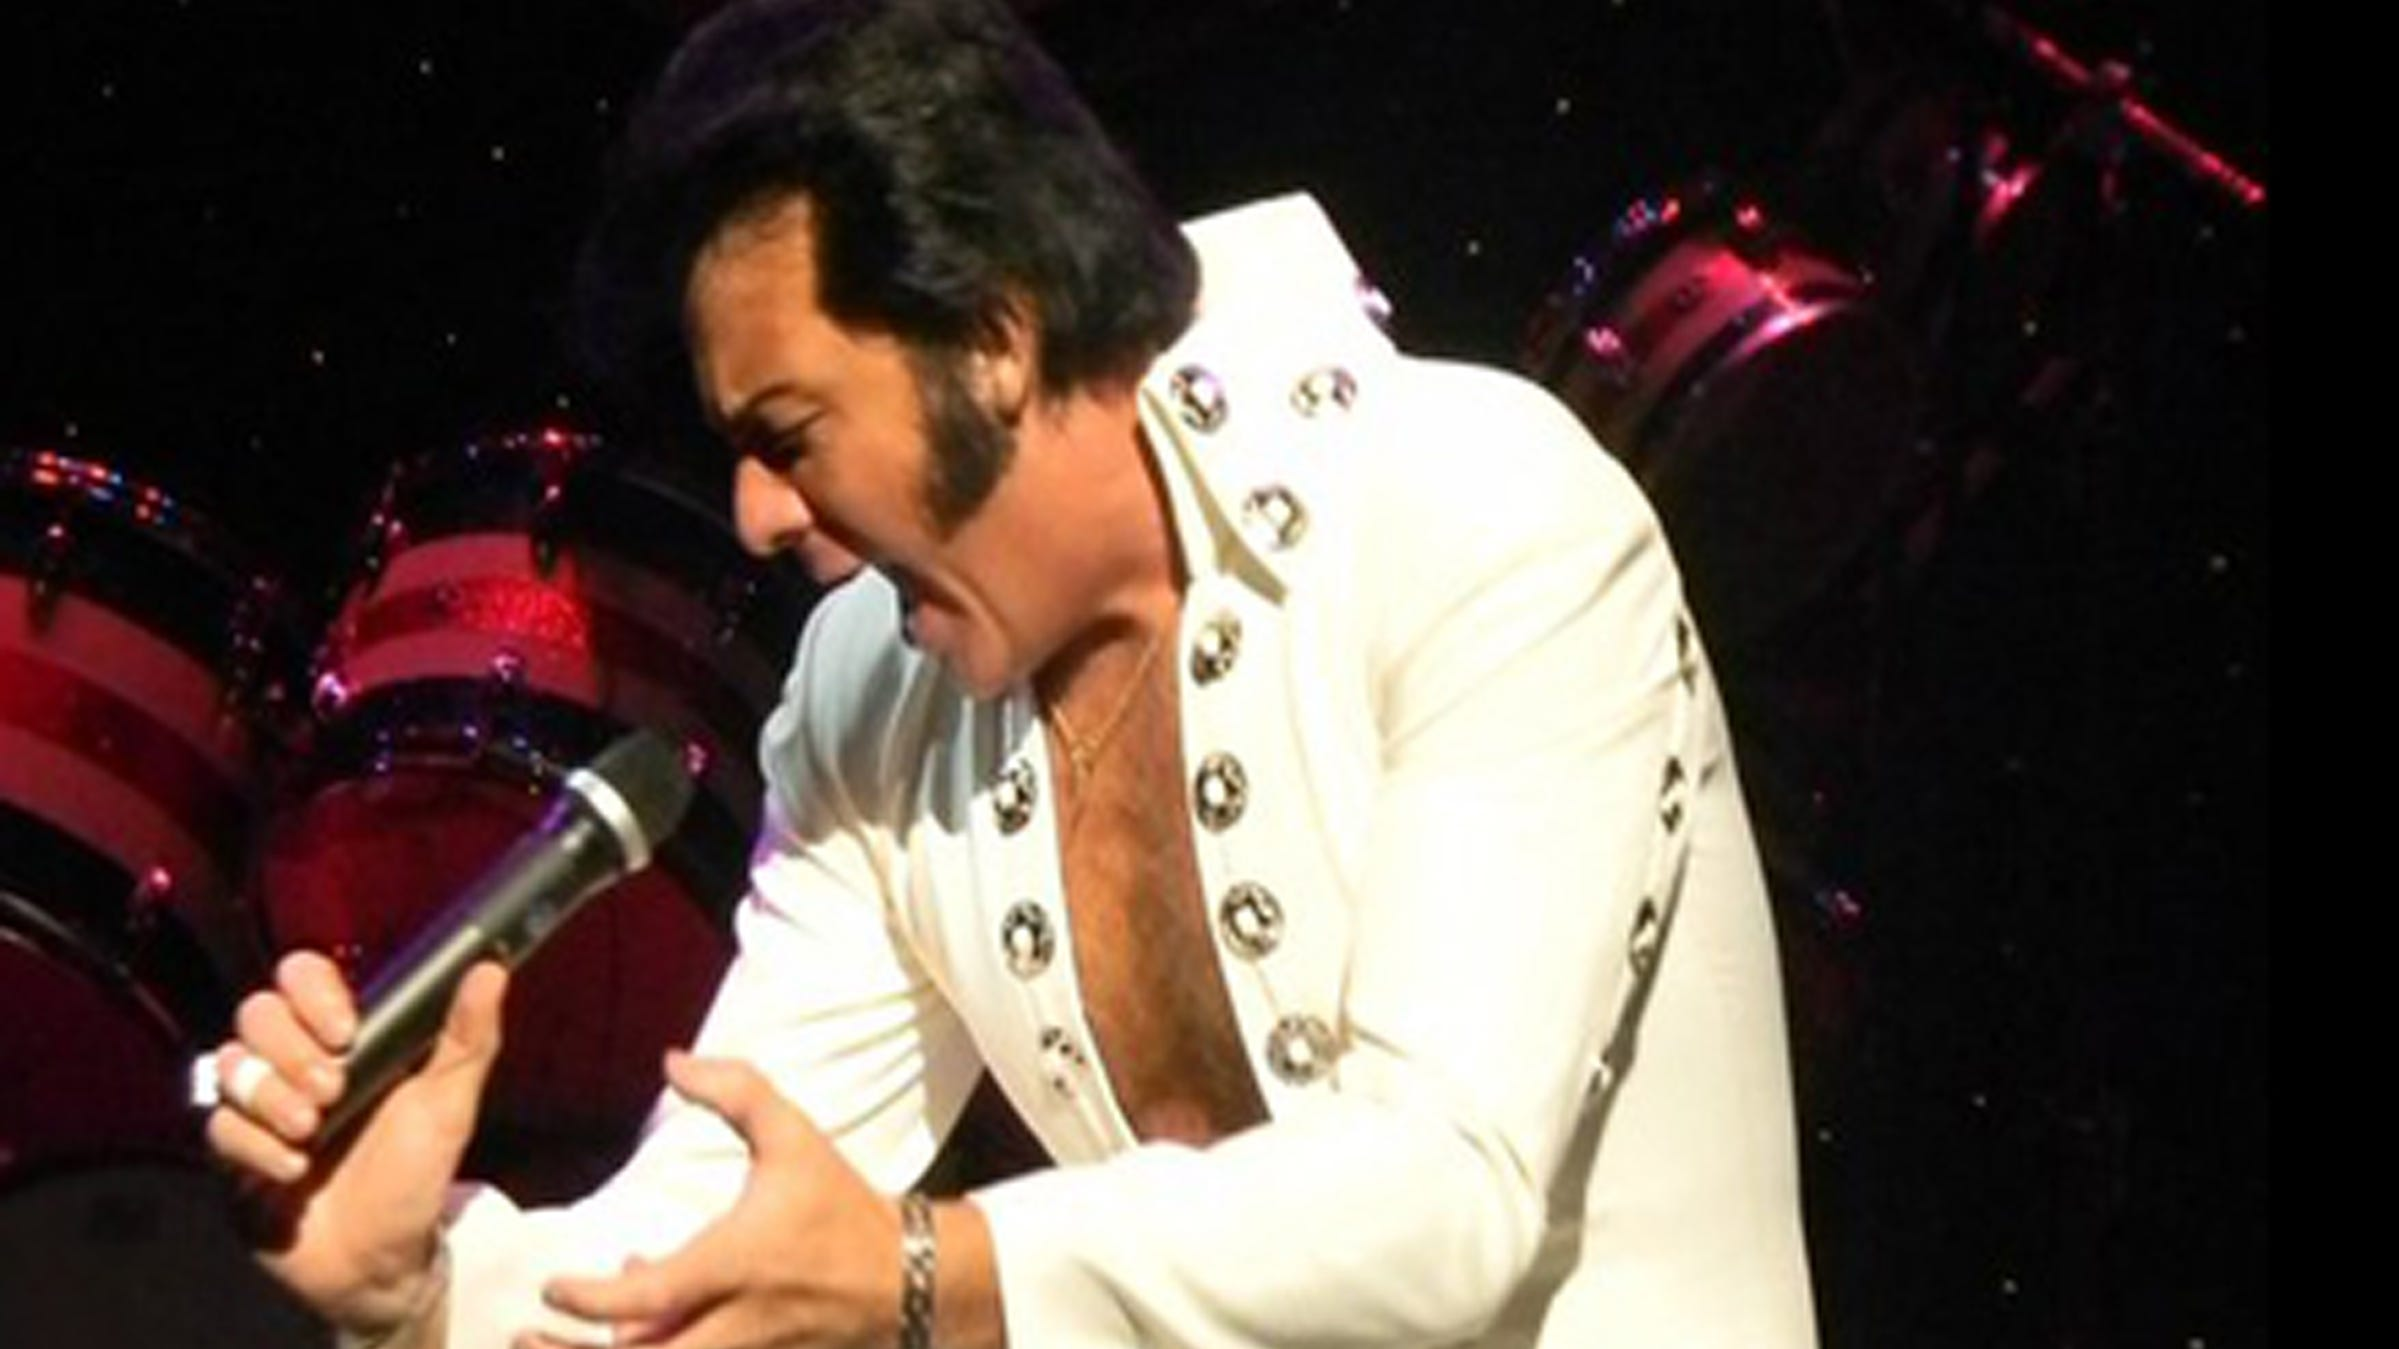 Award-winning Elvis Presley tribute artist David Lee will play the fifth annual Ocean City Elvis Festival at 8 p.m. Friday, Oct. 19. The four-day event continues through Sunday. Oct. 21.